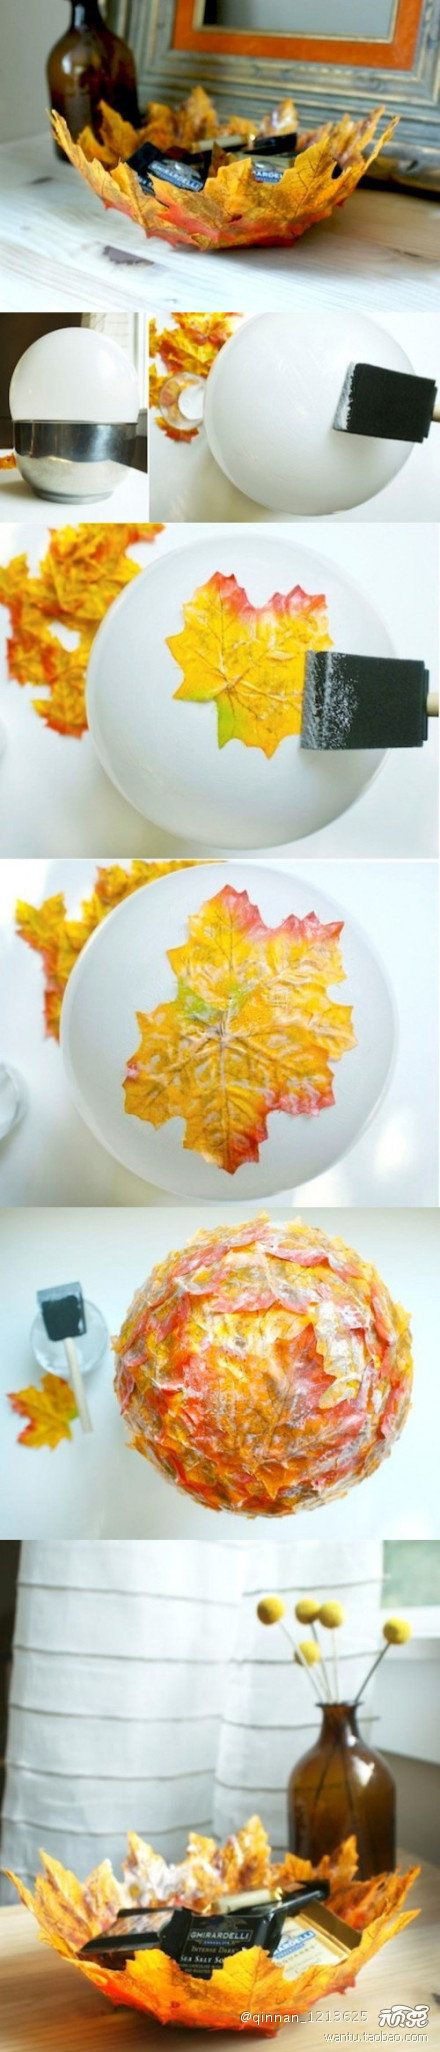 DIY Leaf Bowl - Hannahs wedding?